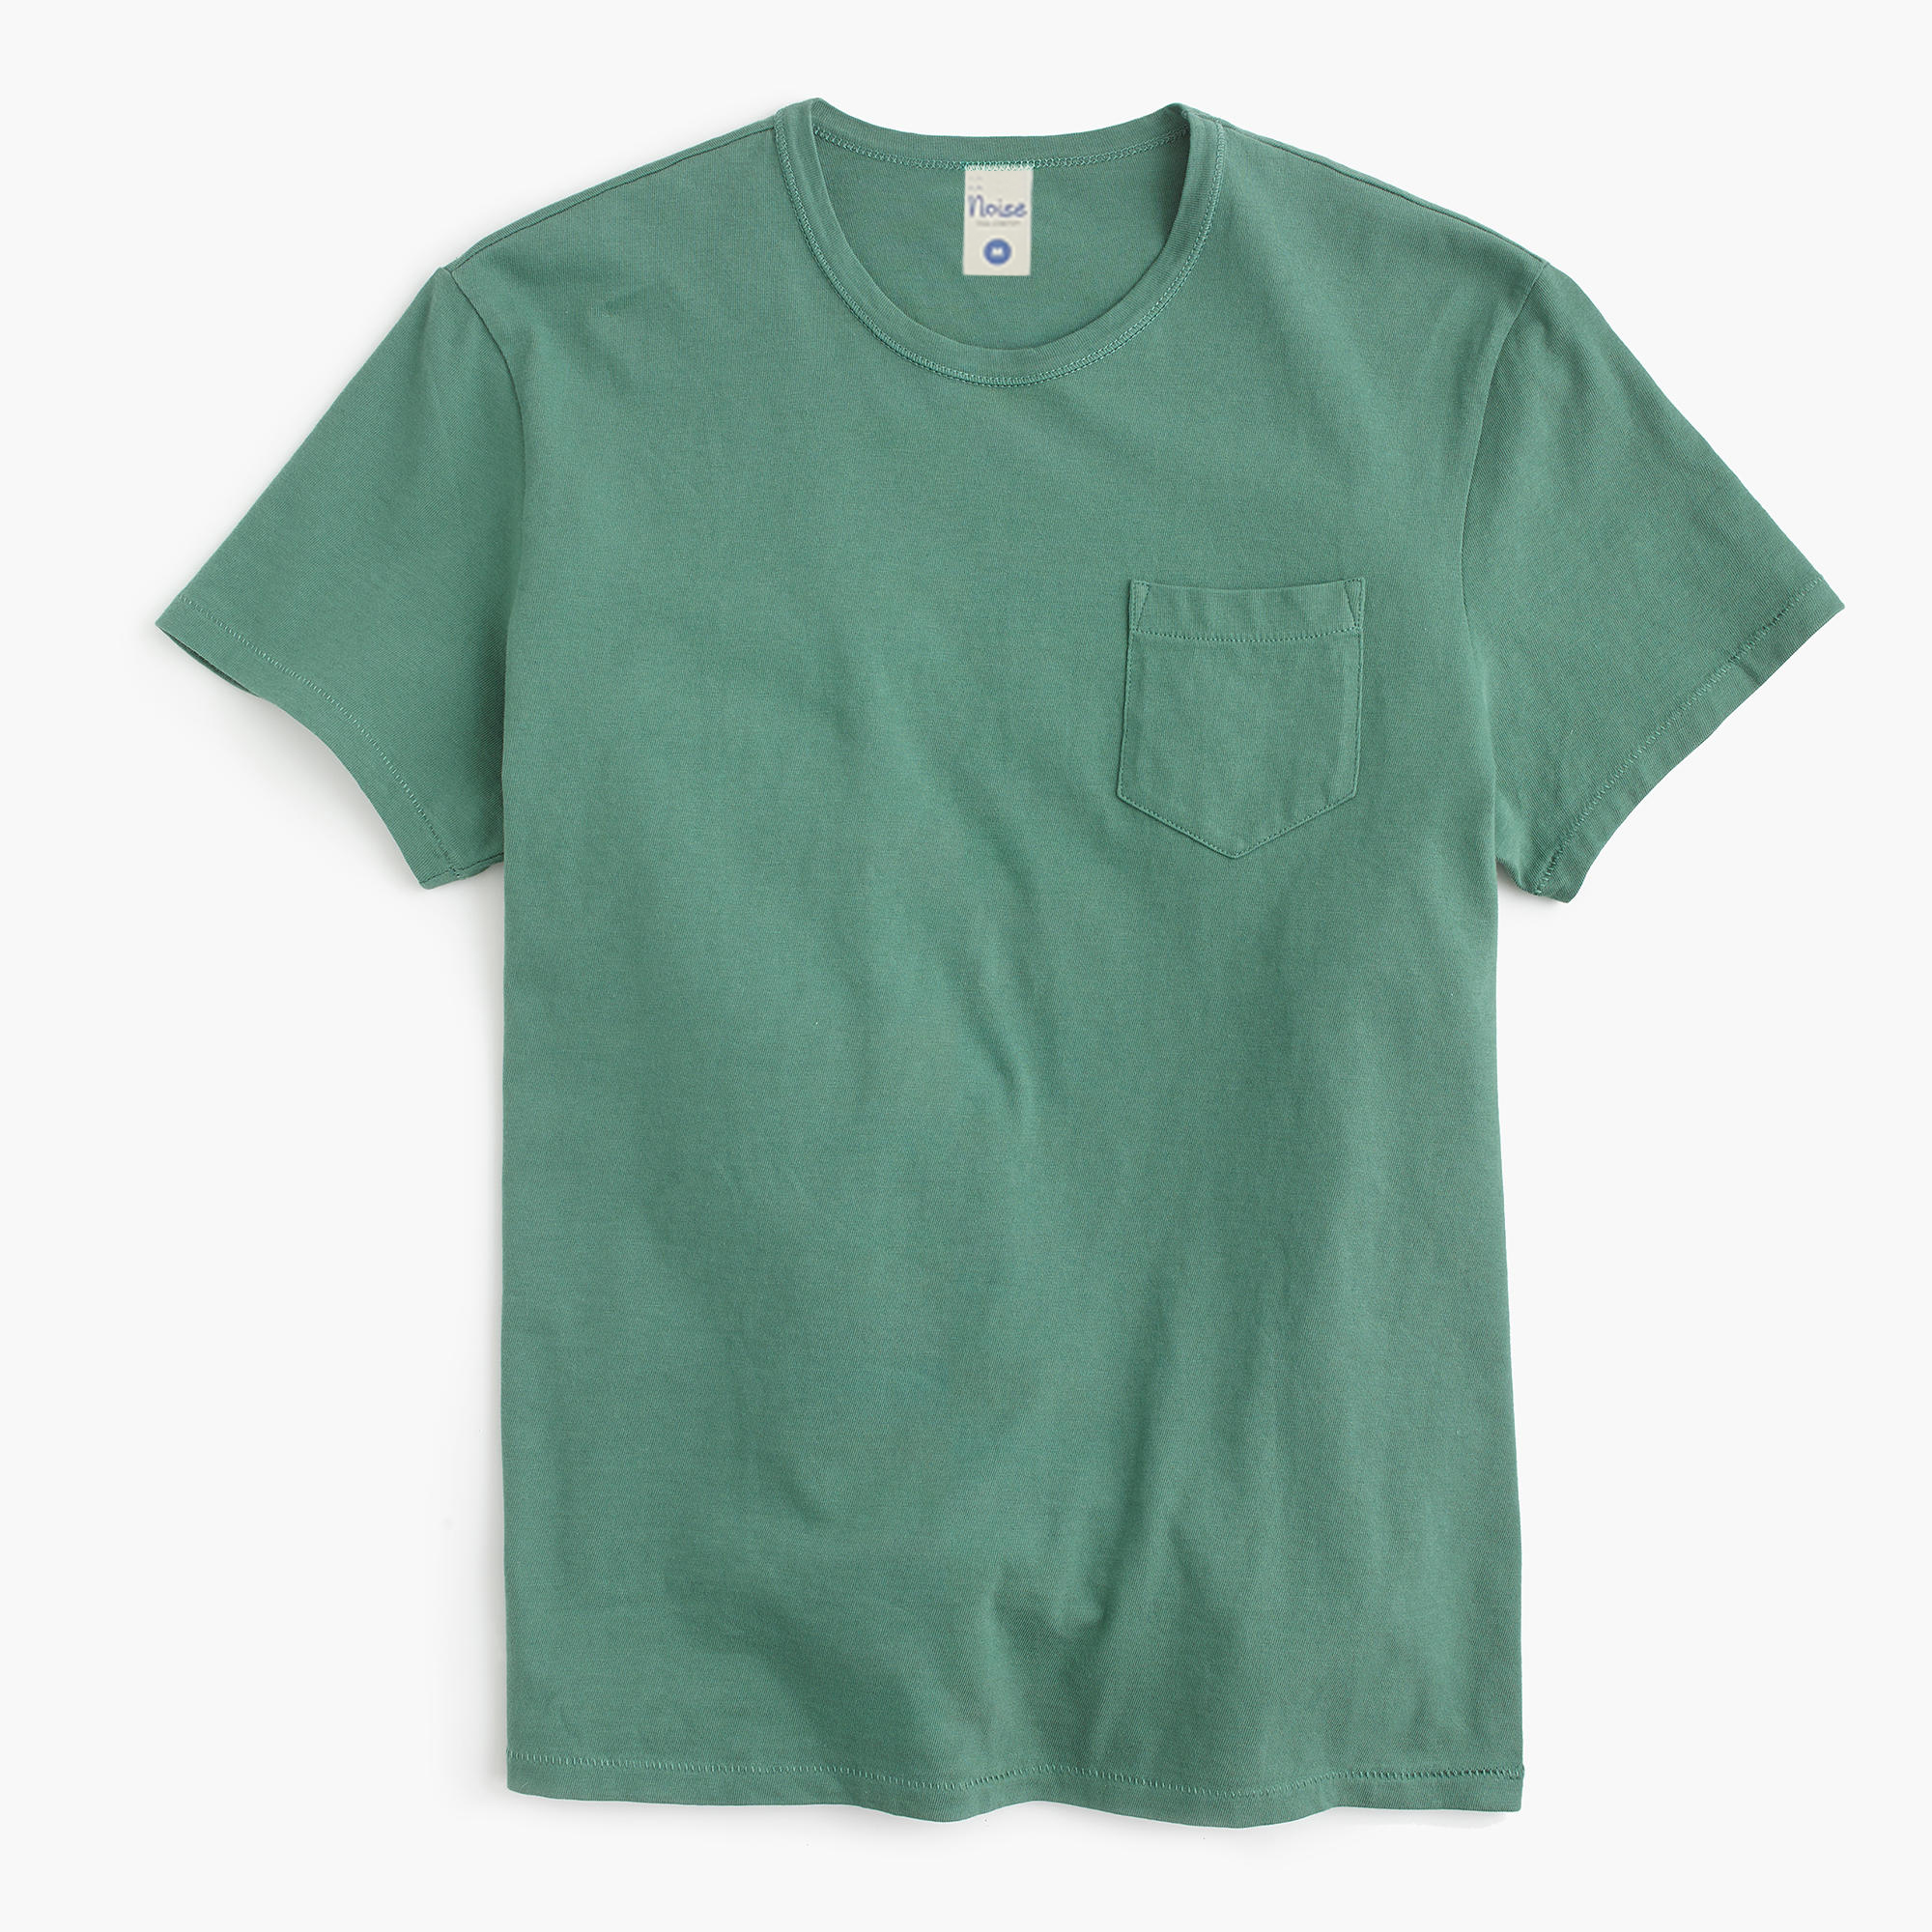 Crew neck short sleeves pocket tee